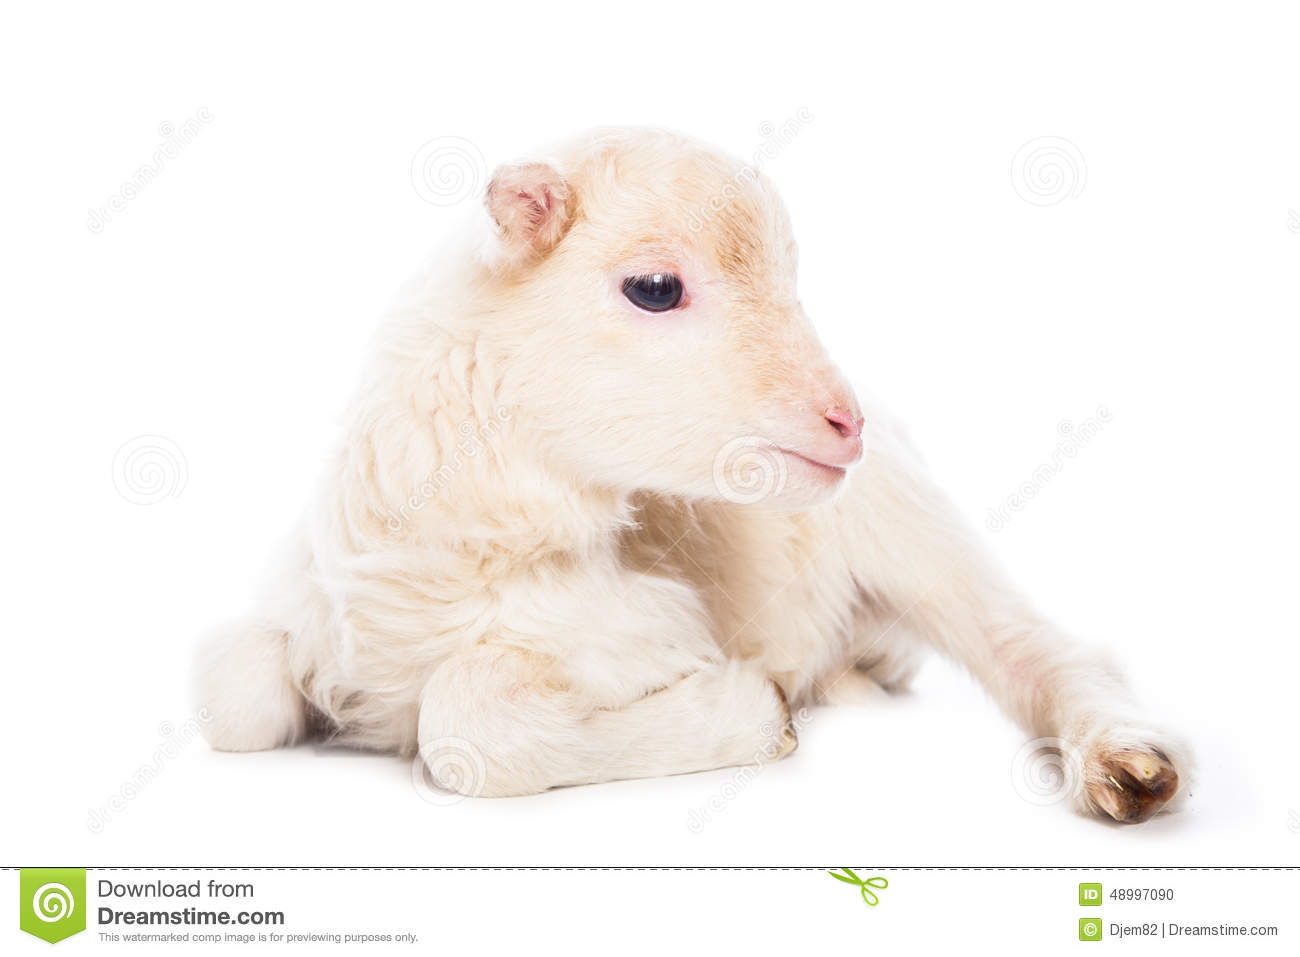 Lamb sitting in front of a white background.